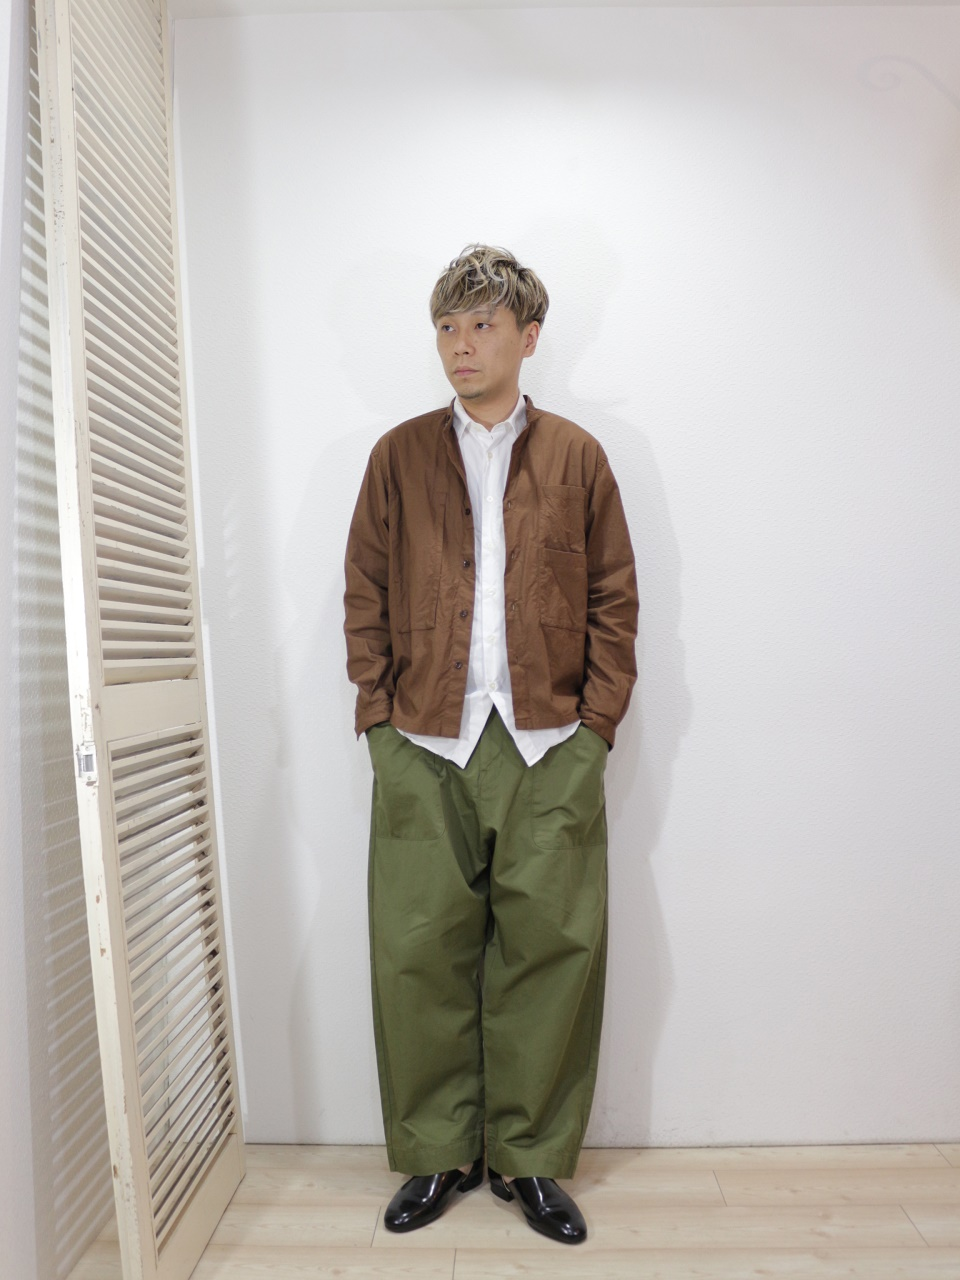 outer/MANUAL ALPHABET-GACHAPOKE BANDCOLLAR JACKET(SIZE 1)shirt/MANUAL ALPHABET-LOOSE FIT REGULAR COLLAR SHT(SIZE 1)pants/KAFIKA-FLANDERS LINEN DECK PANTS(SIZE 02)を使ったコーディネート